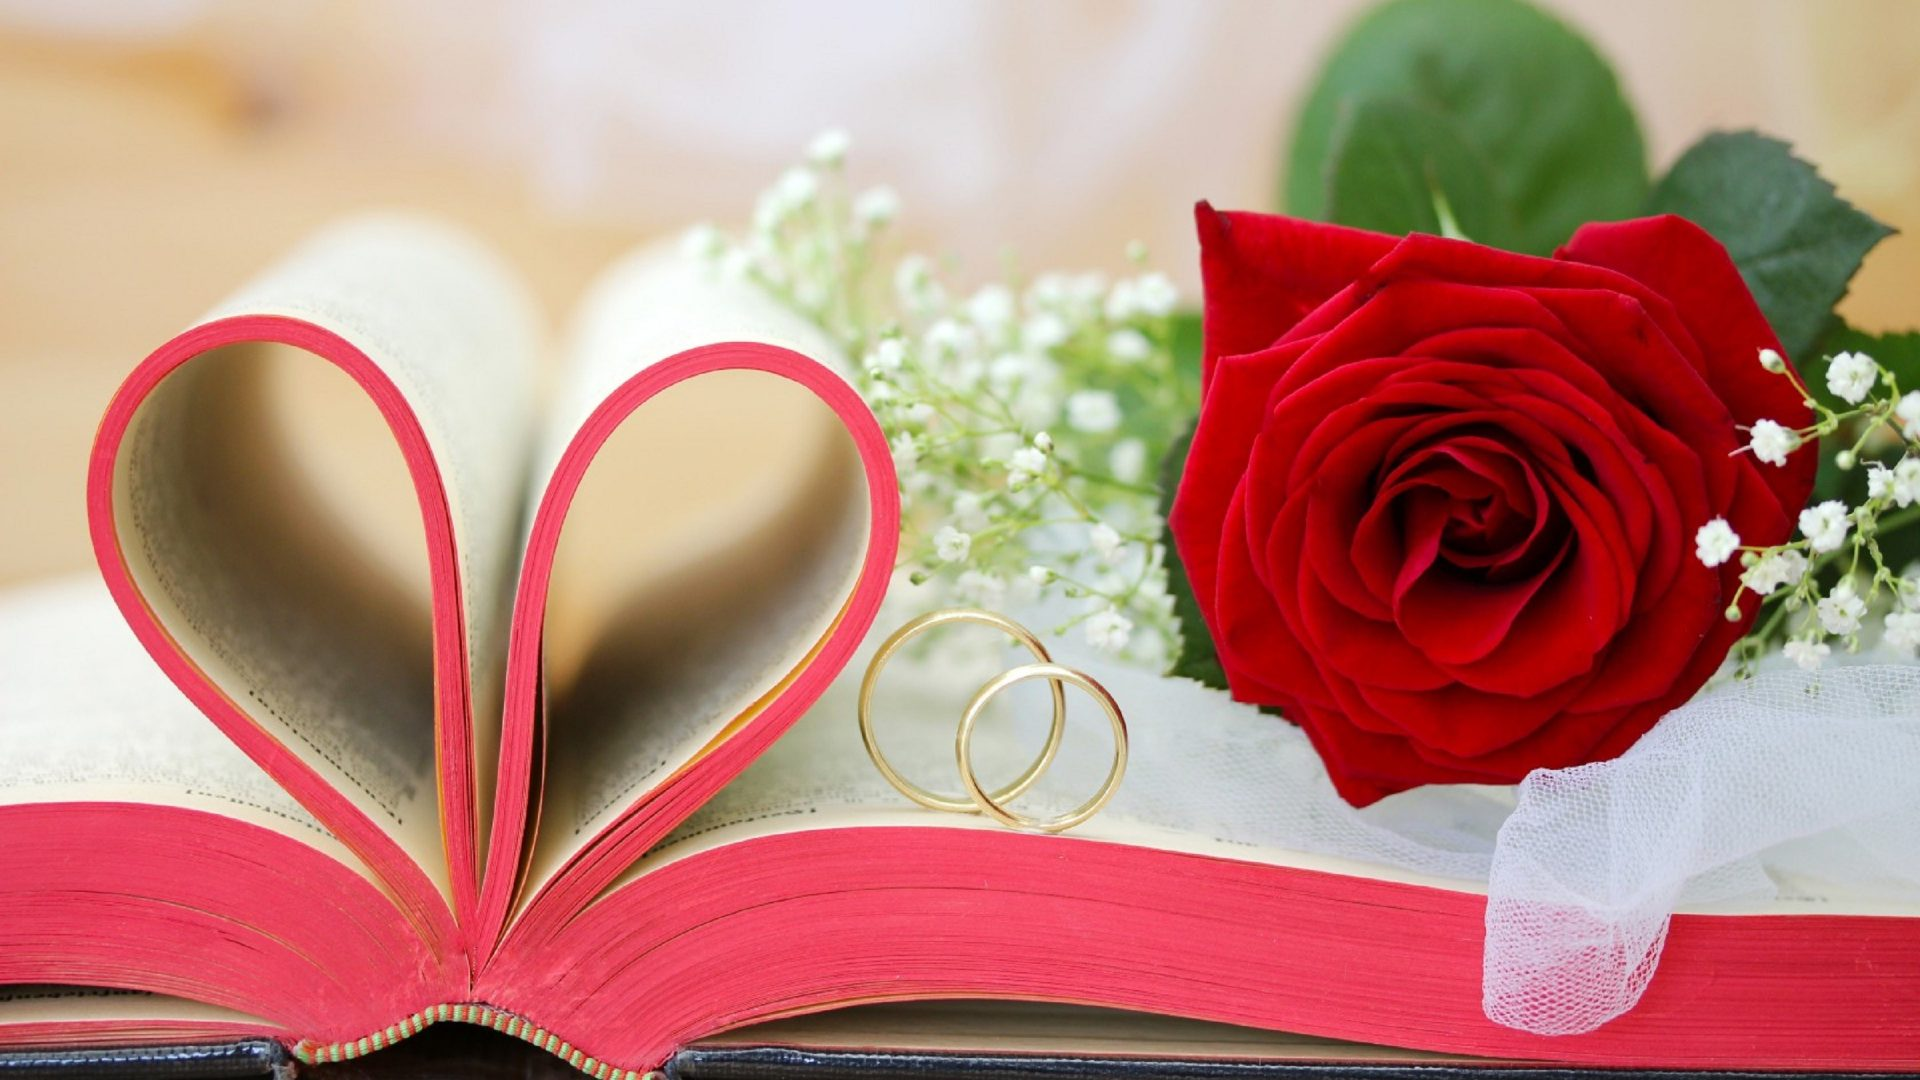 Book-Tag-Roses-Love-Still-Beauty-Heart-Colors-Lovely-Valentine-Seasons-Day-Rings-Creative-February-wallpaper-wp3603648